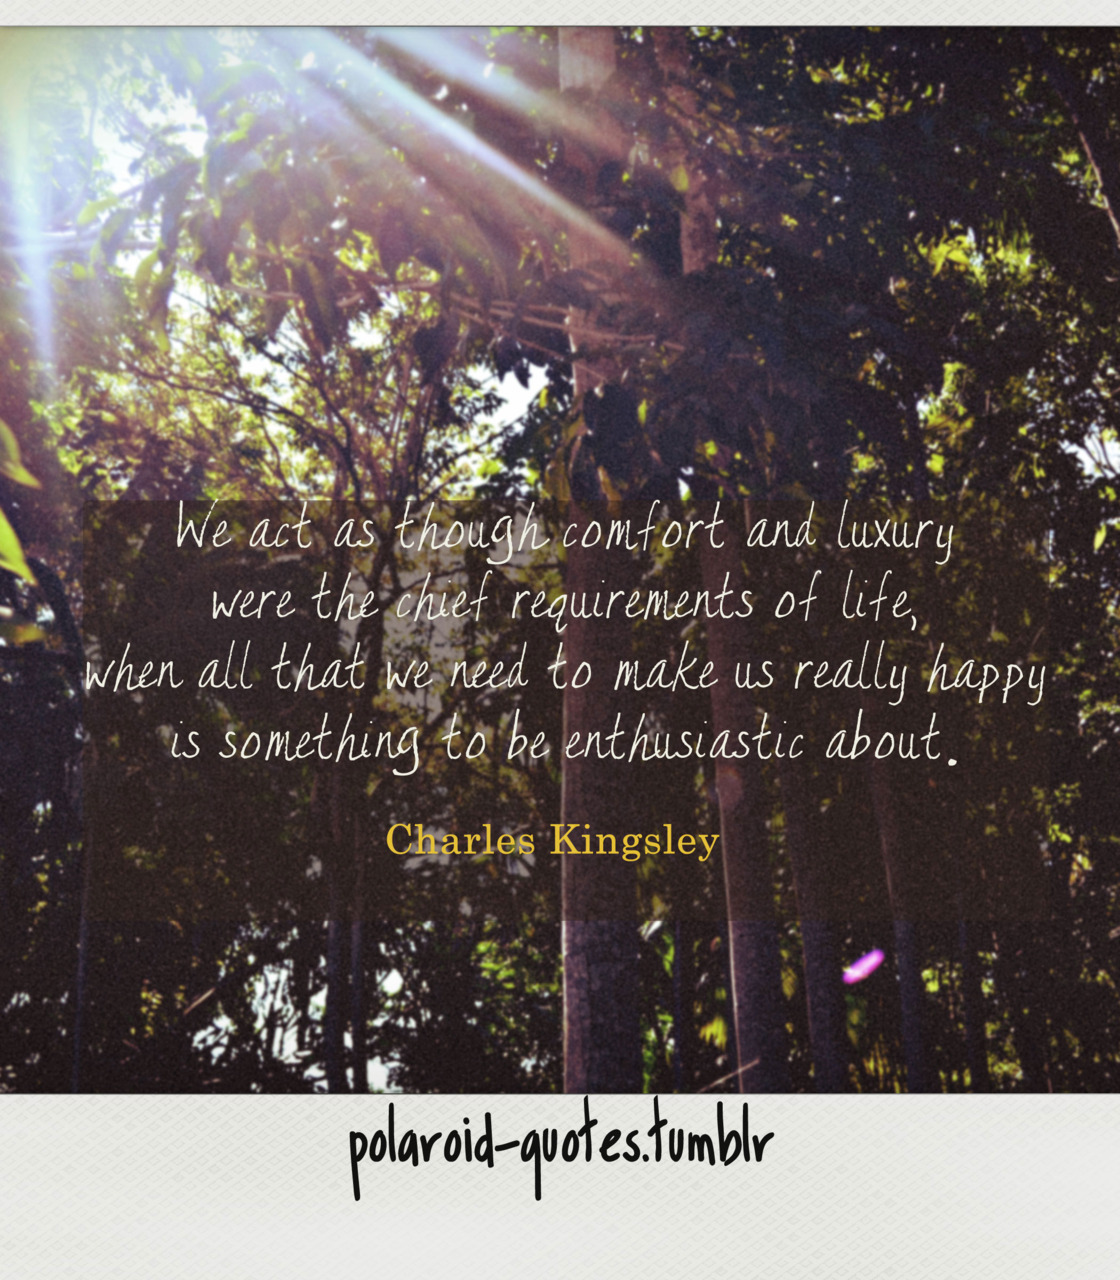 polaroid-quotes:  012